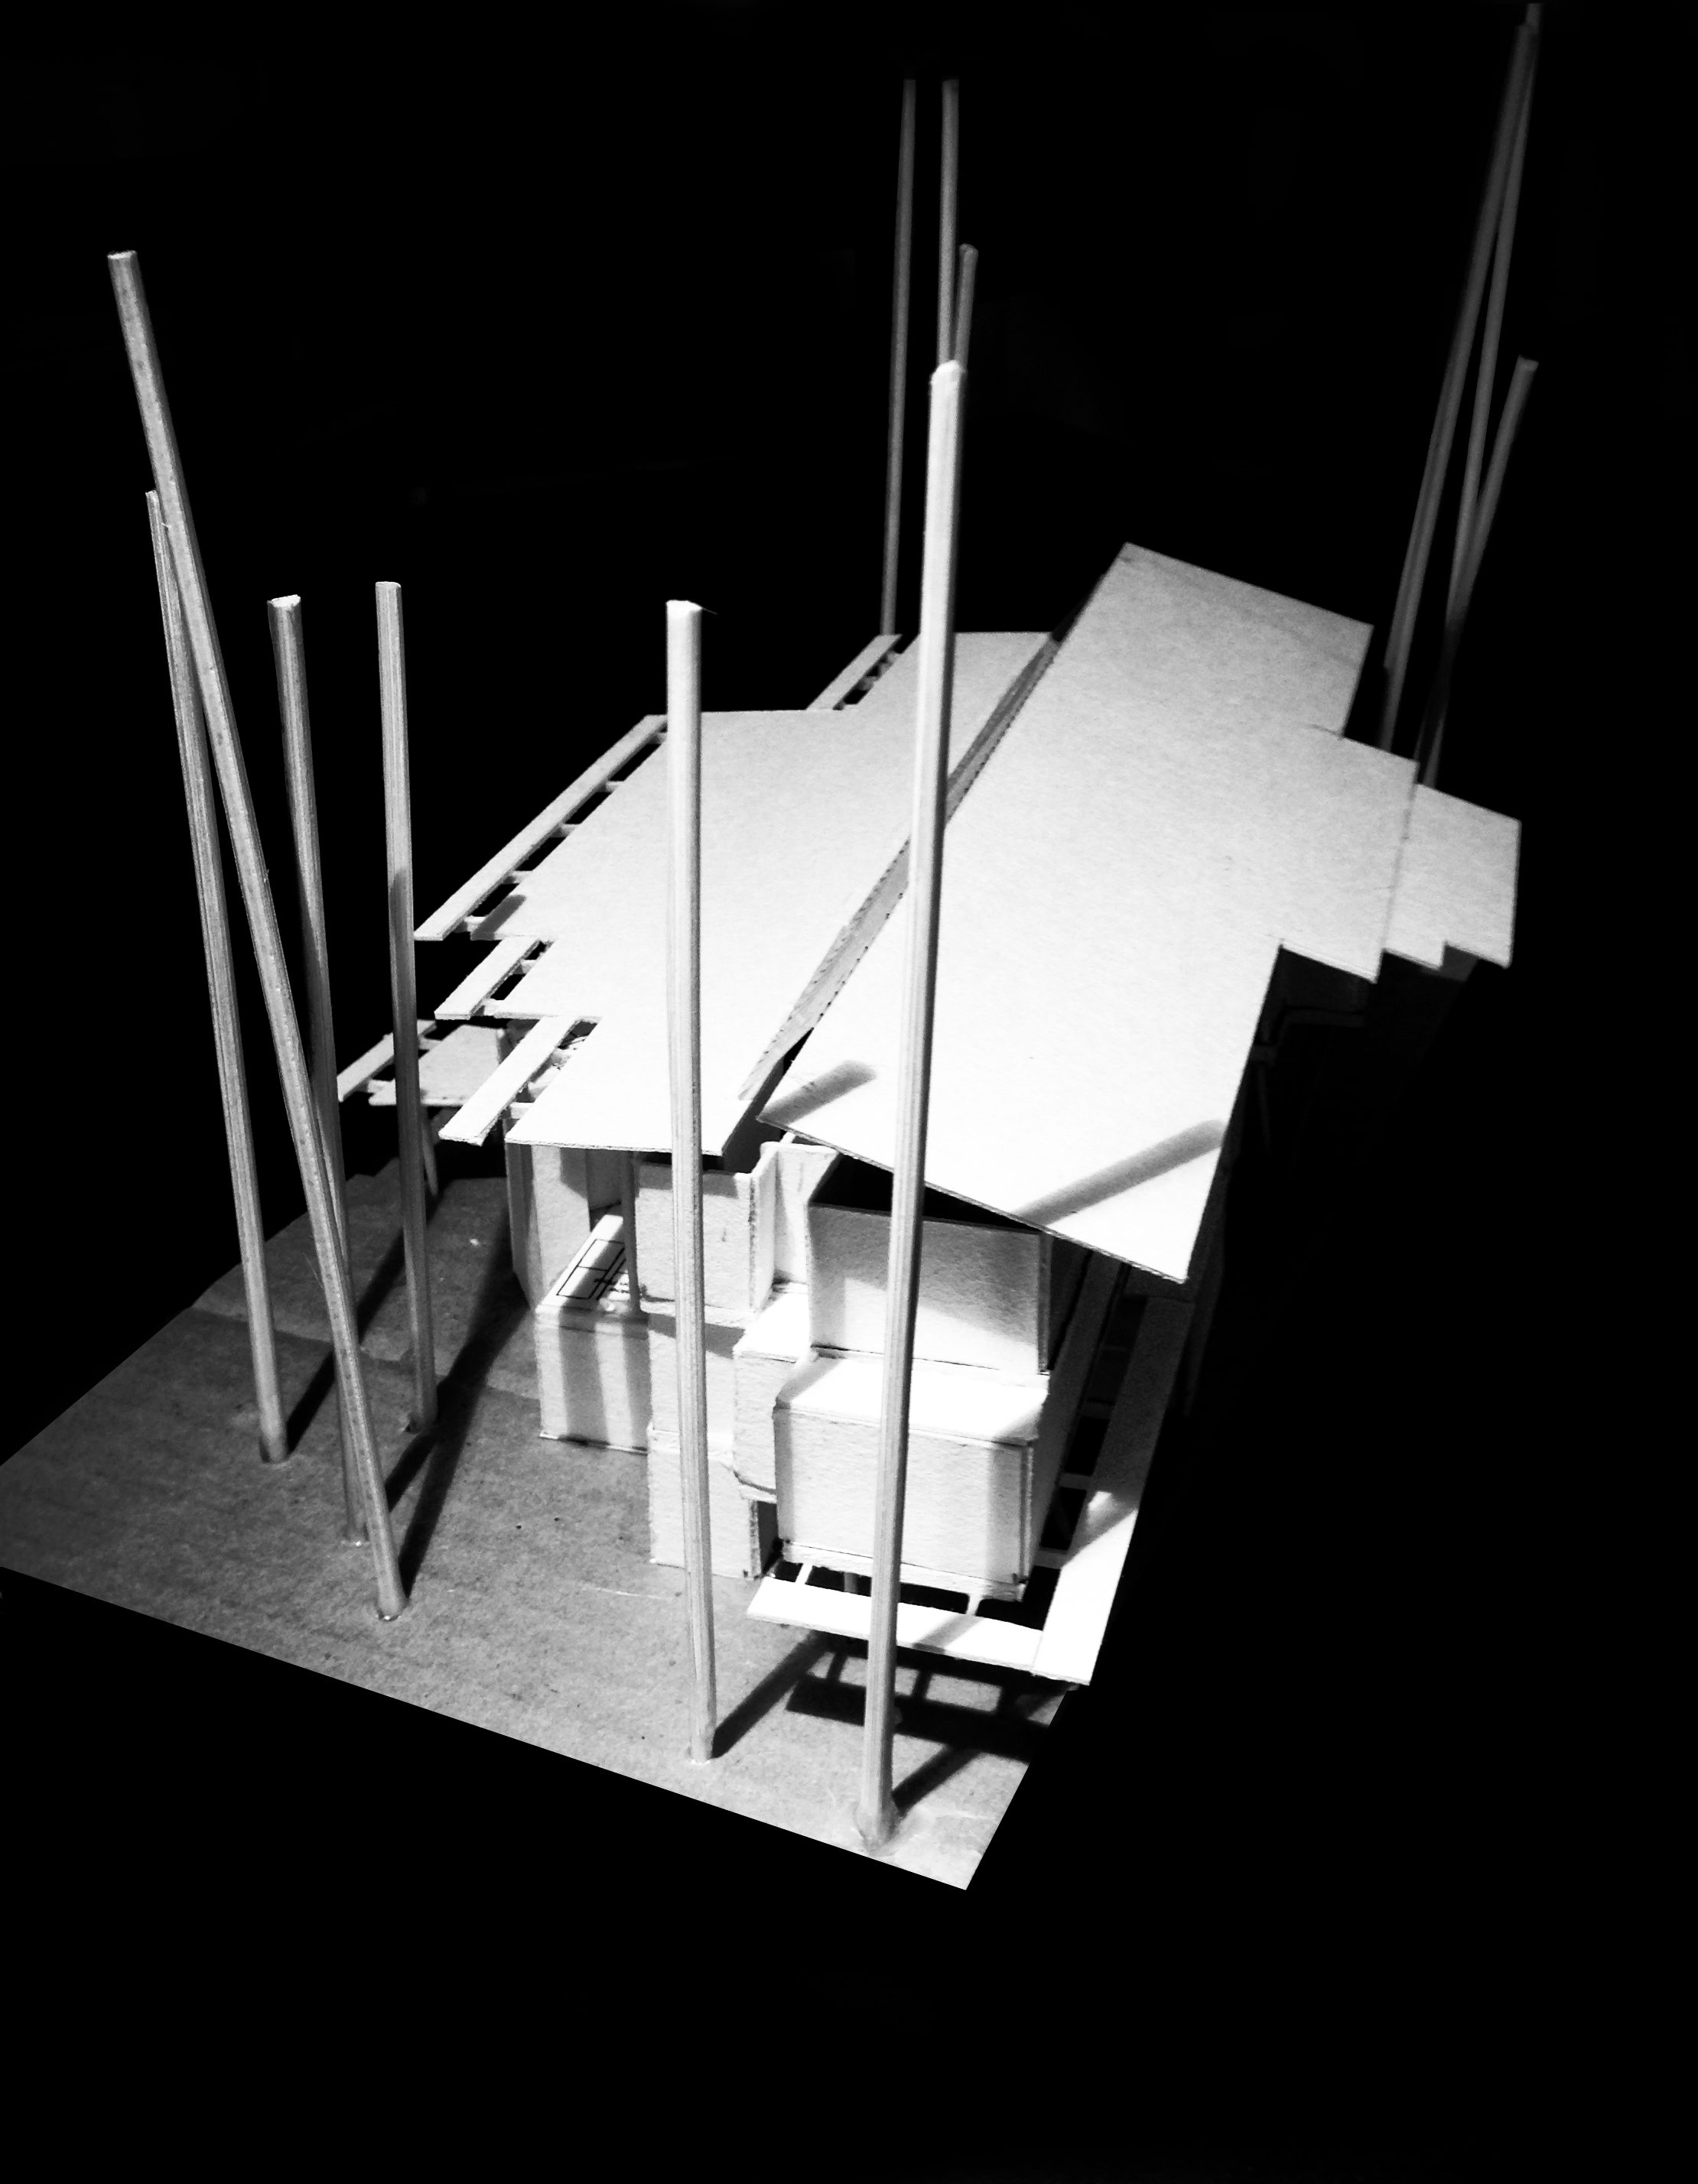 3 Storey Building design model - Rear North End Looking South